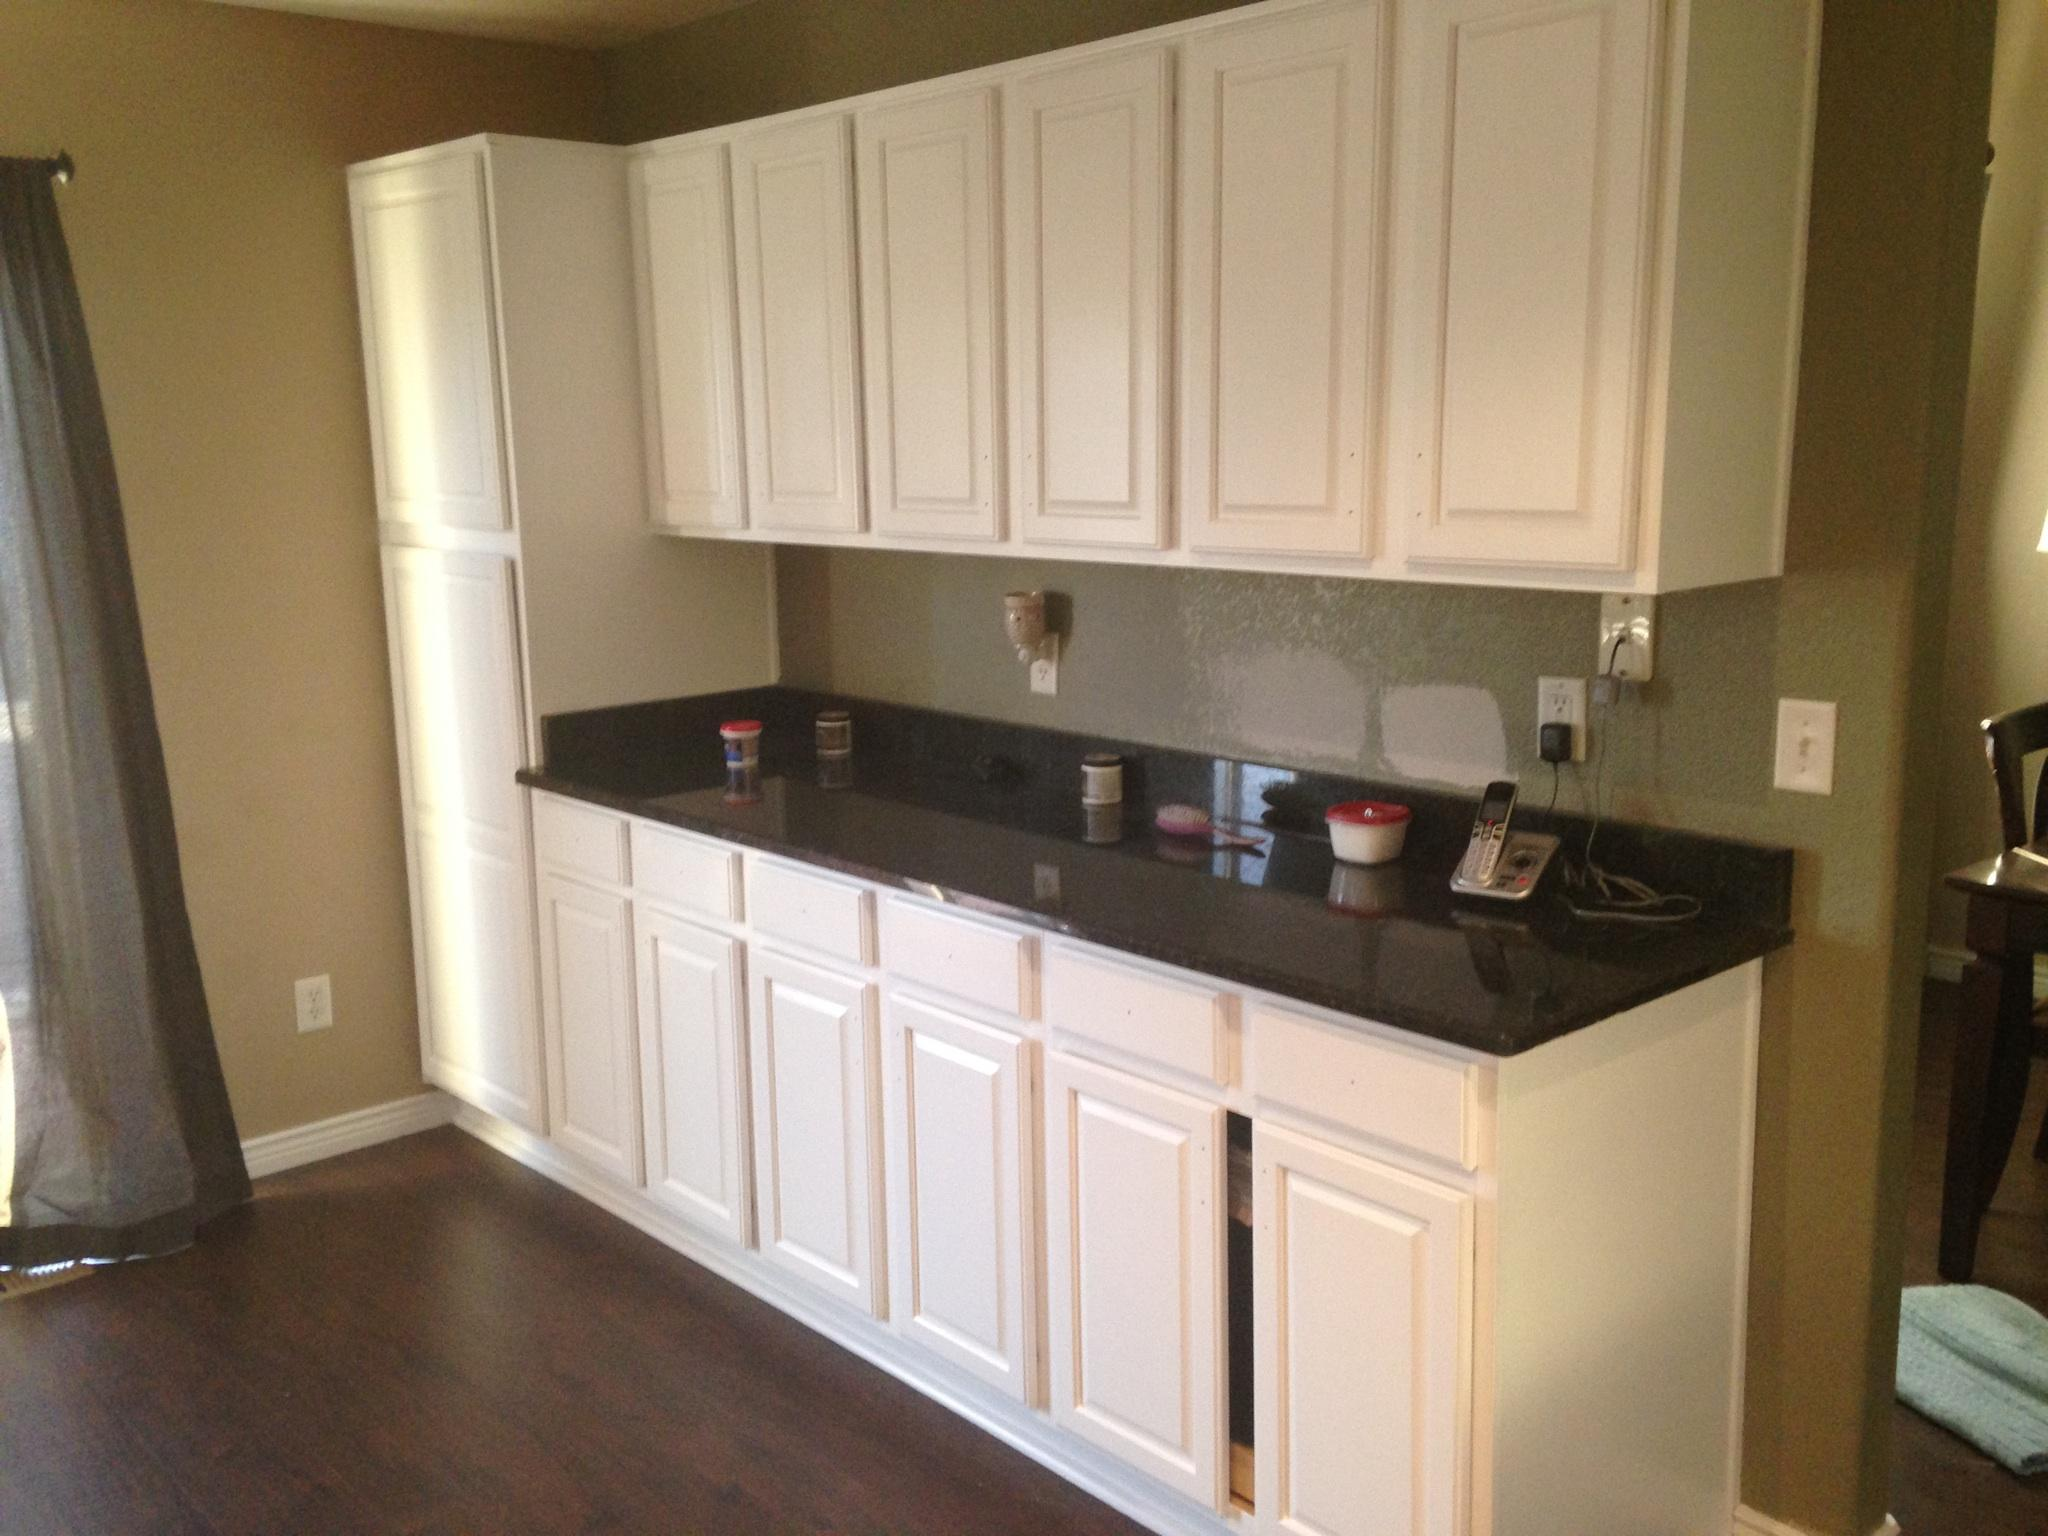 Kitchen Cabinet Refacing Denver Cabinet Refinishing Denver | Painting Kitchen Cabinets